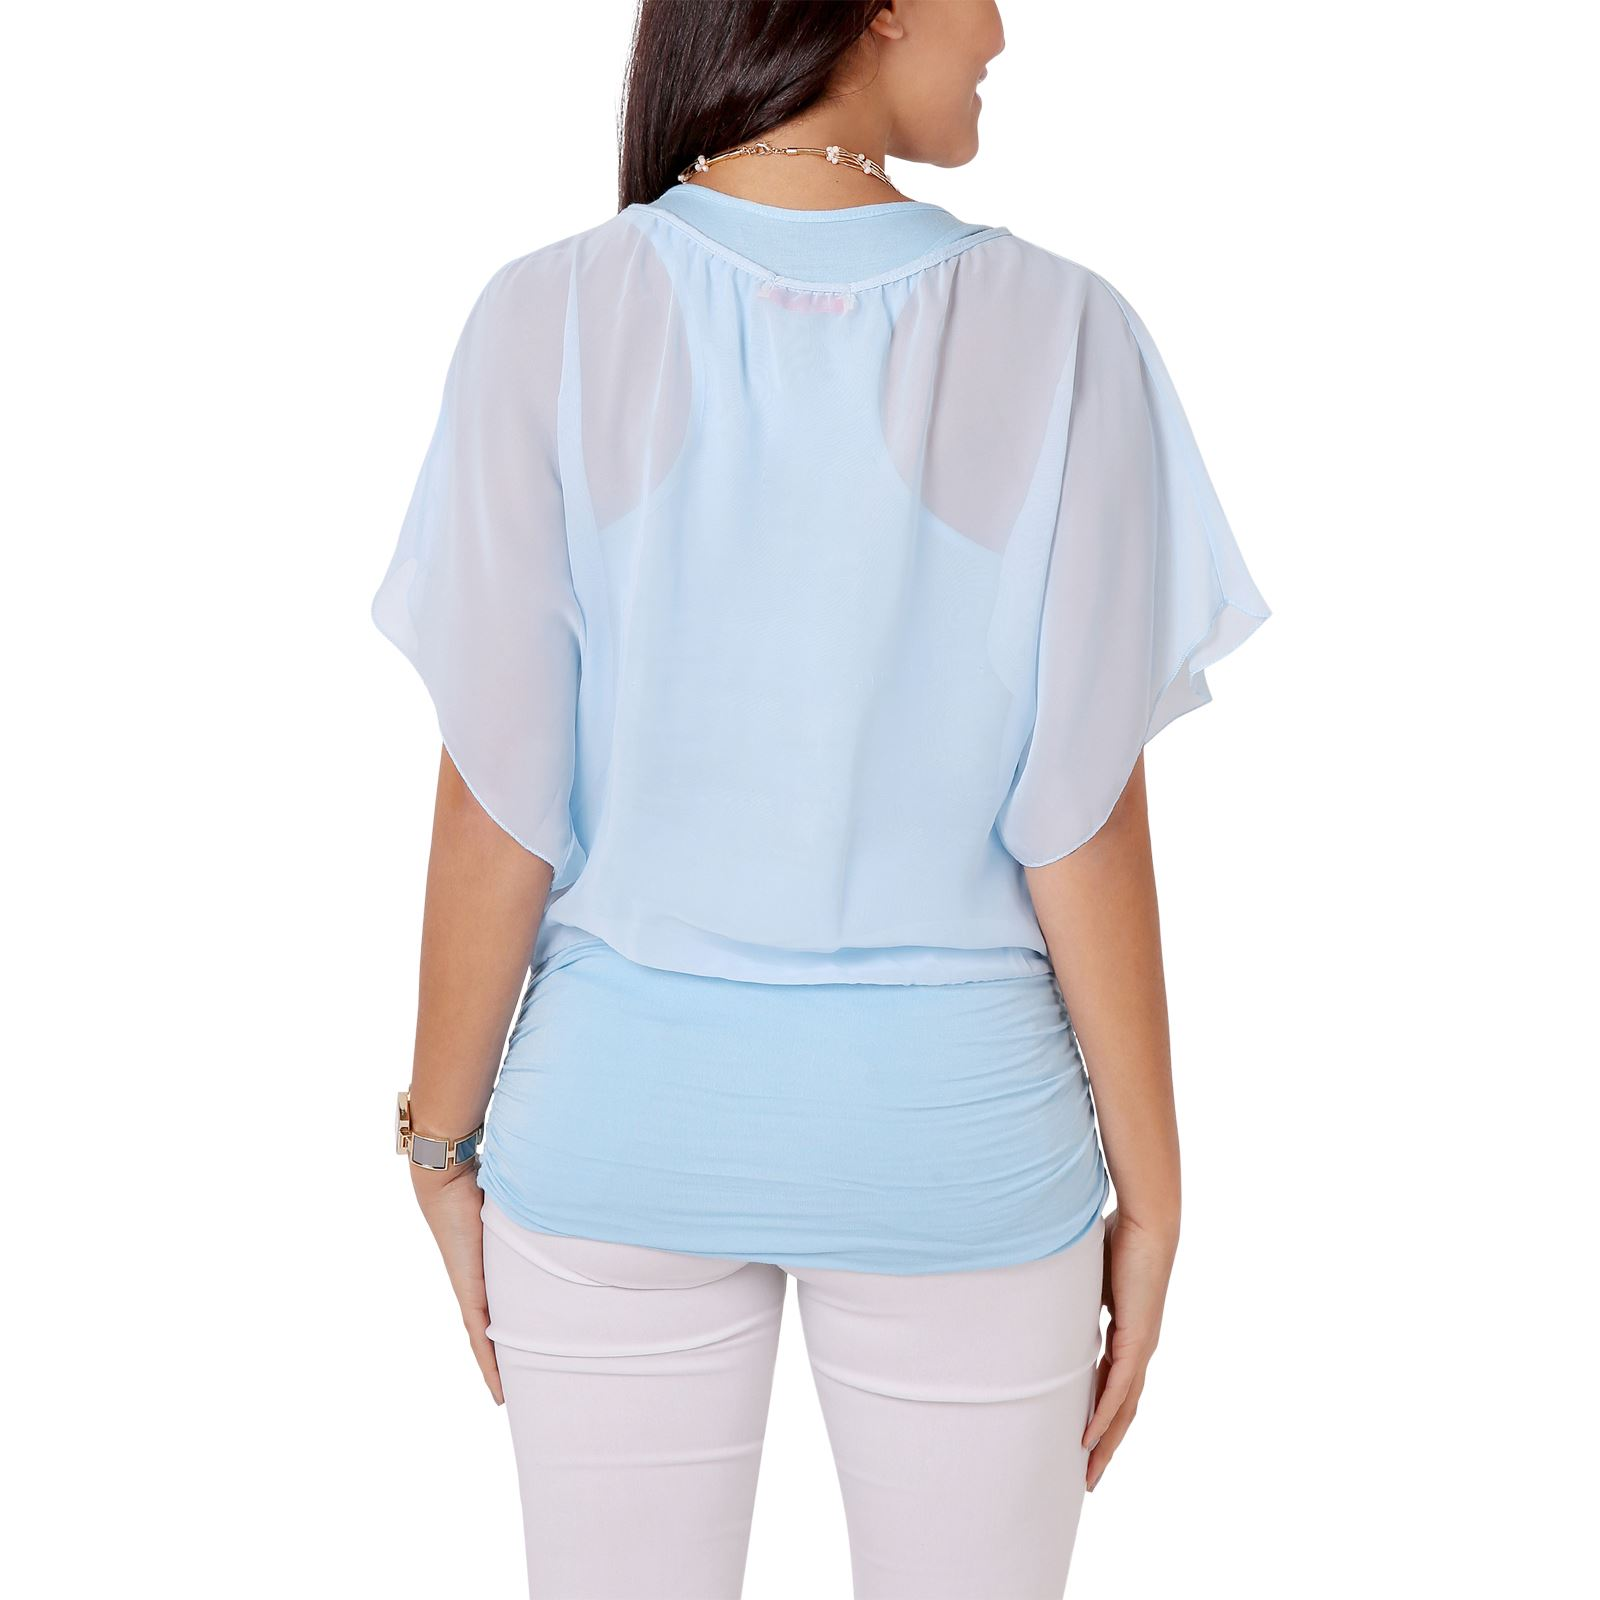 Womens-Scoop-Neck-Blouse-Baggy-Batwing-T-Shirt-Top-Ladies-Oversized-Chiffon-2in1 thumbnail 3